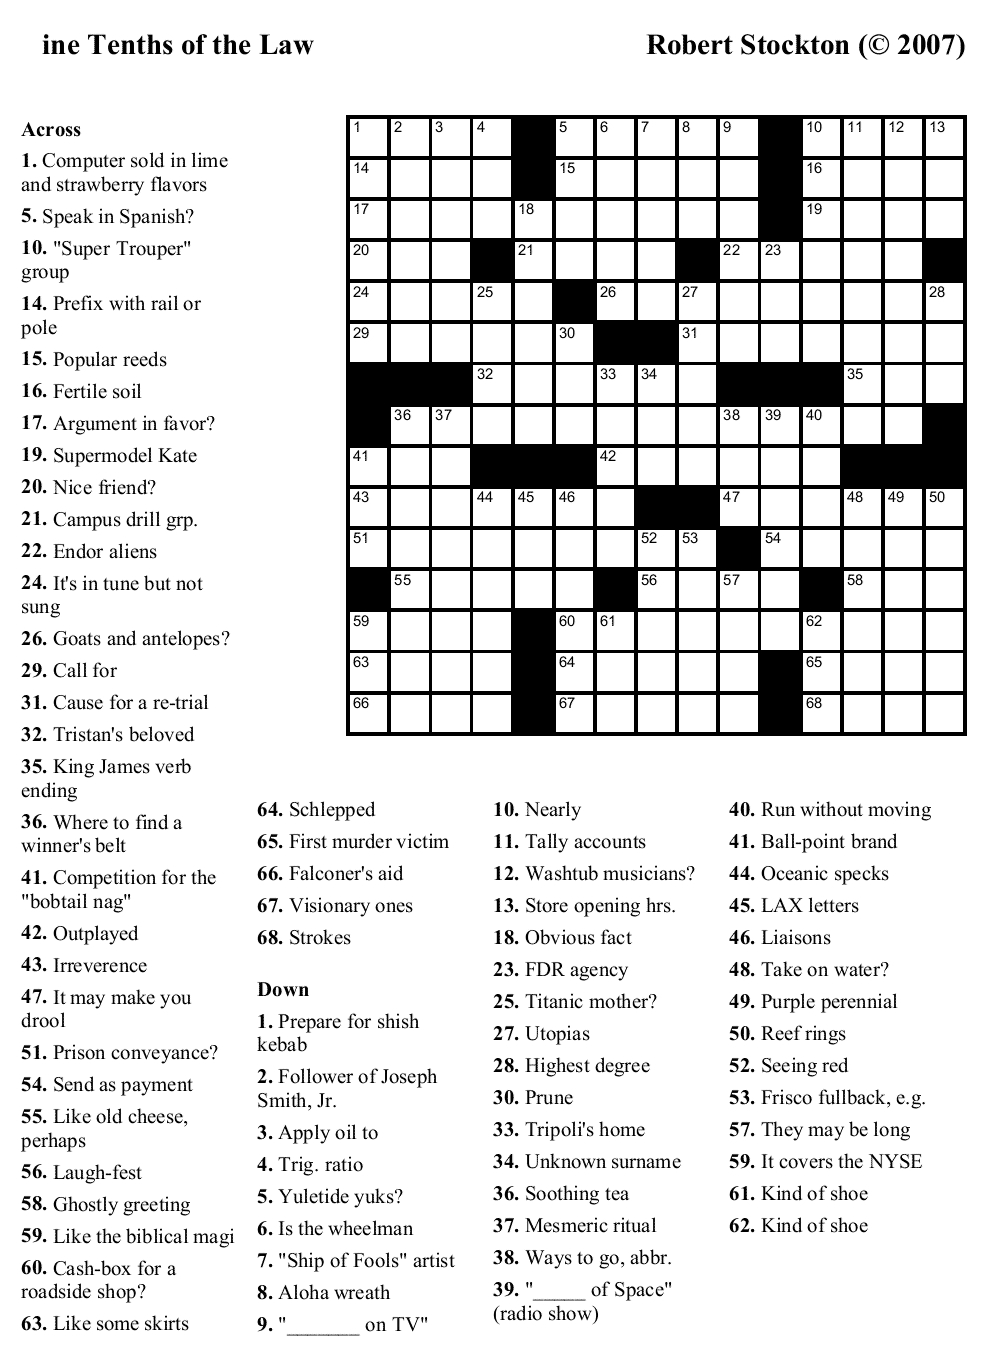 Crossword Puzzles Printable - Yahoo Image Search Results | Crossword - Free Printable Sports Crossword Puzzles